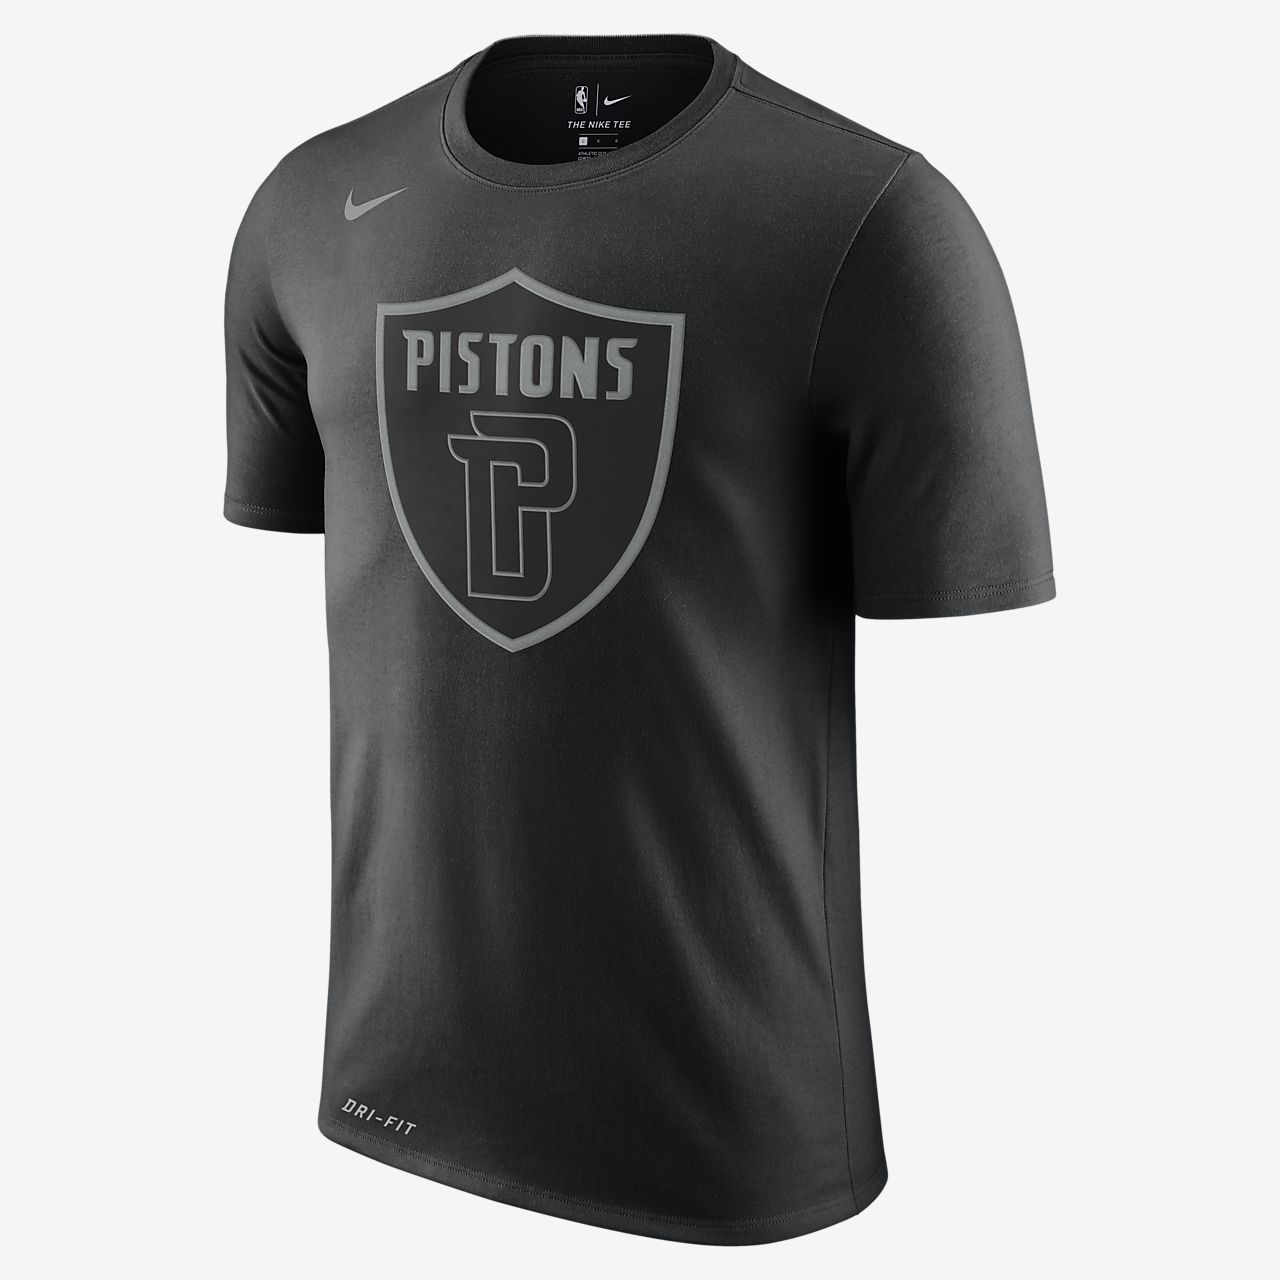 fcec0647493 Detroit Pistons City Edition Nike Dri-FIT Men s NBA T-Shirt. Nike.com